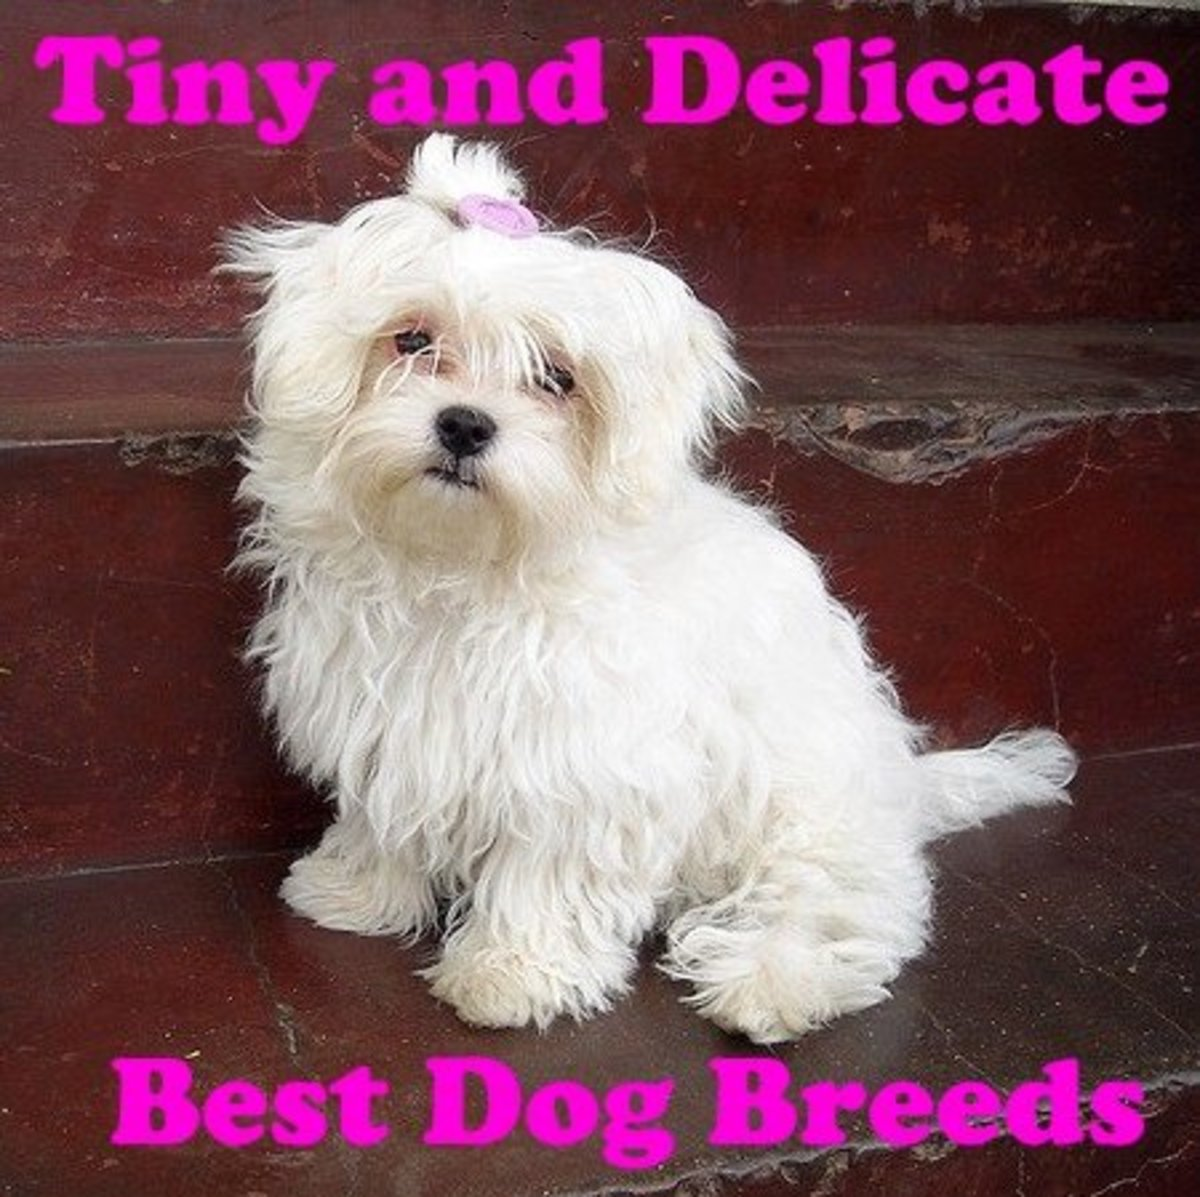 The Maltese is a tiny delicate dog breed that does not shed much.